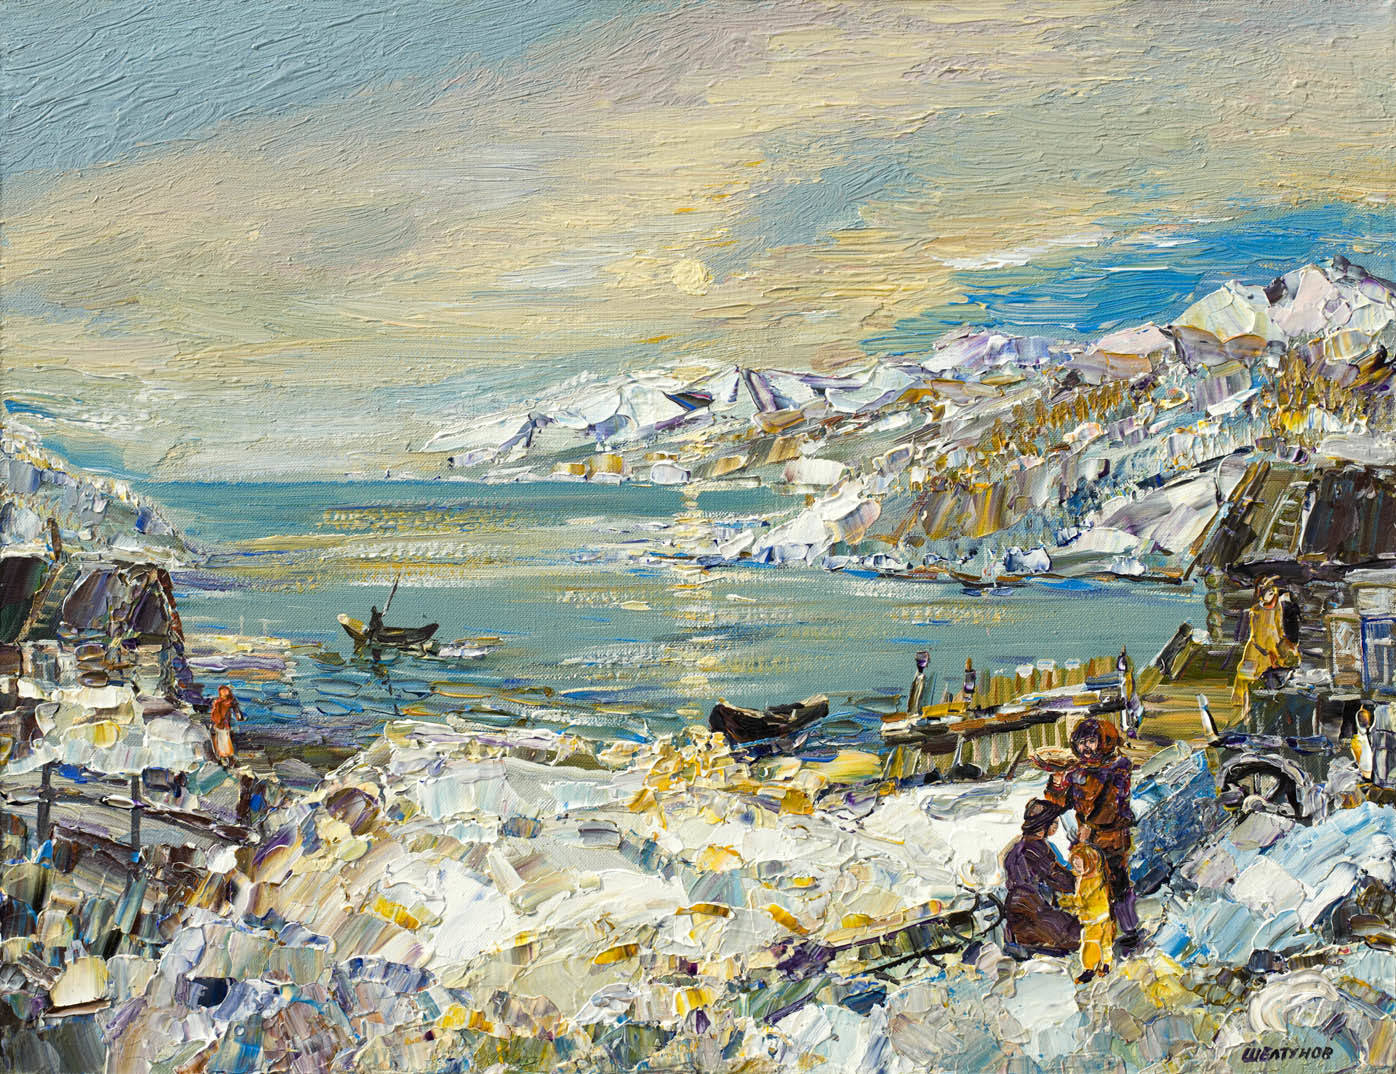 Alexander Sheltunov. At the Baikal 在贝加尔湖 2008 Oil on canvas 油画底布 50 × 65